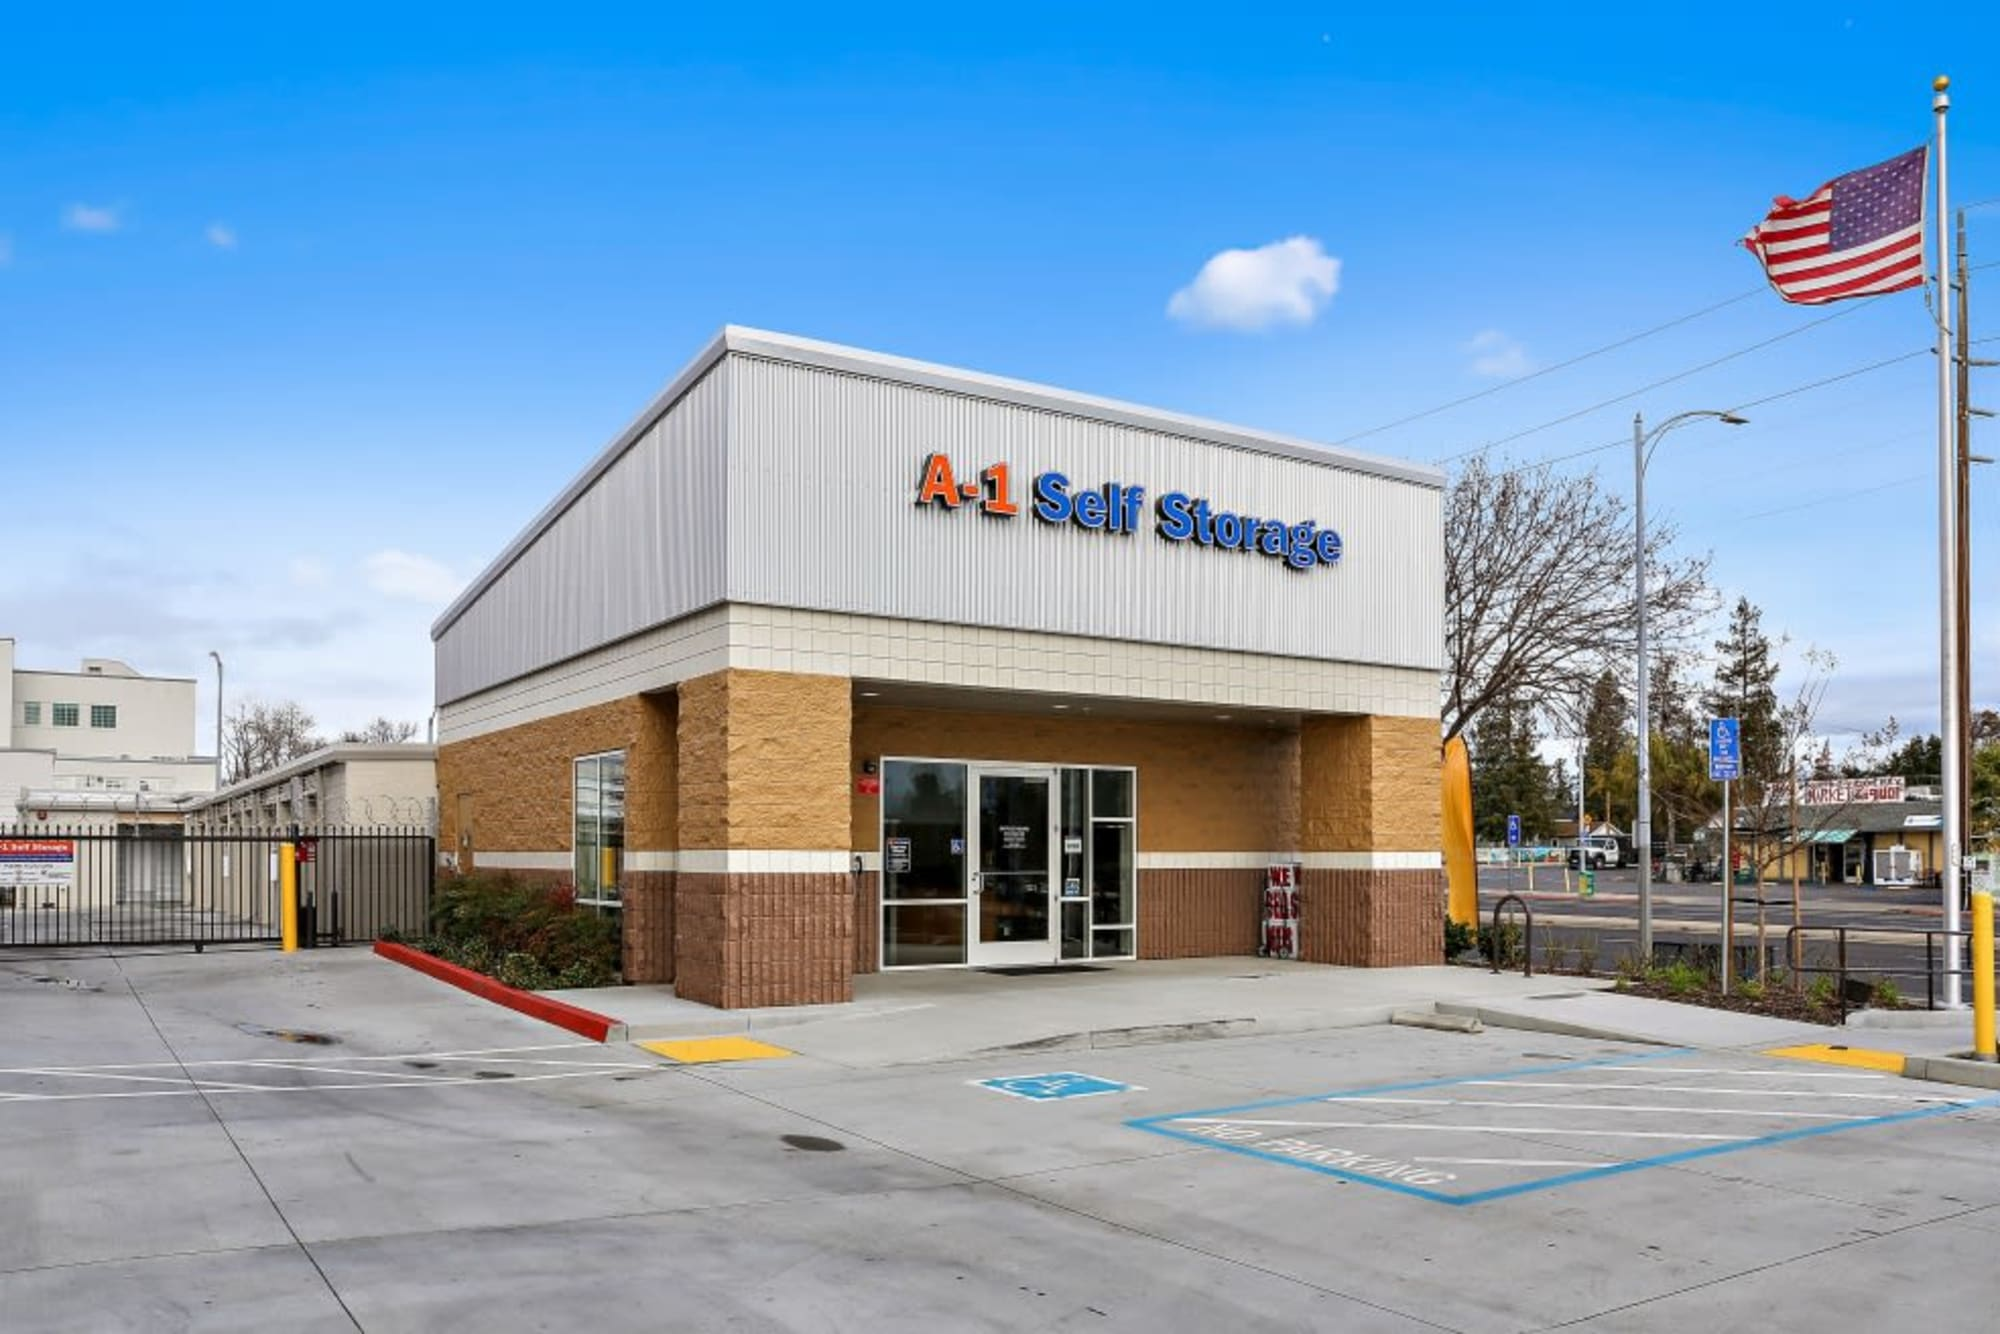 The front office at A-1 Self Storage